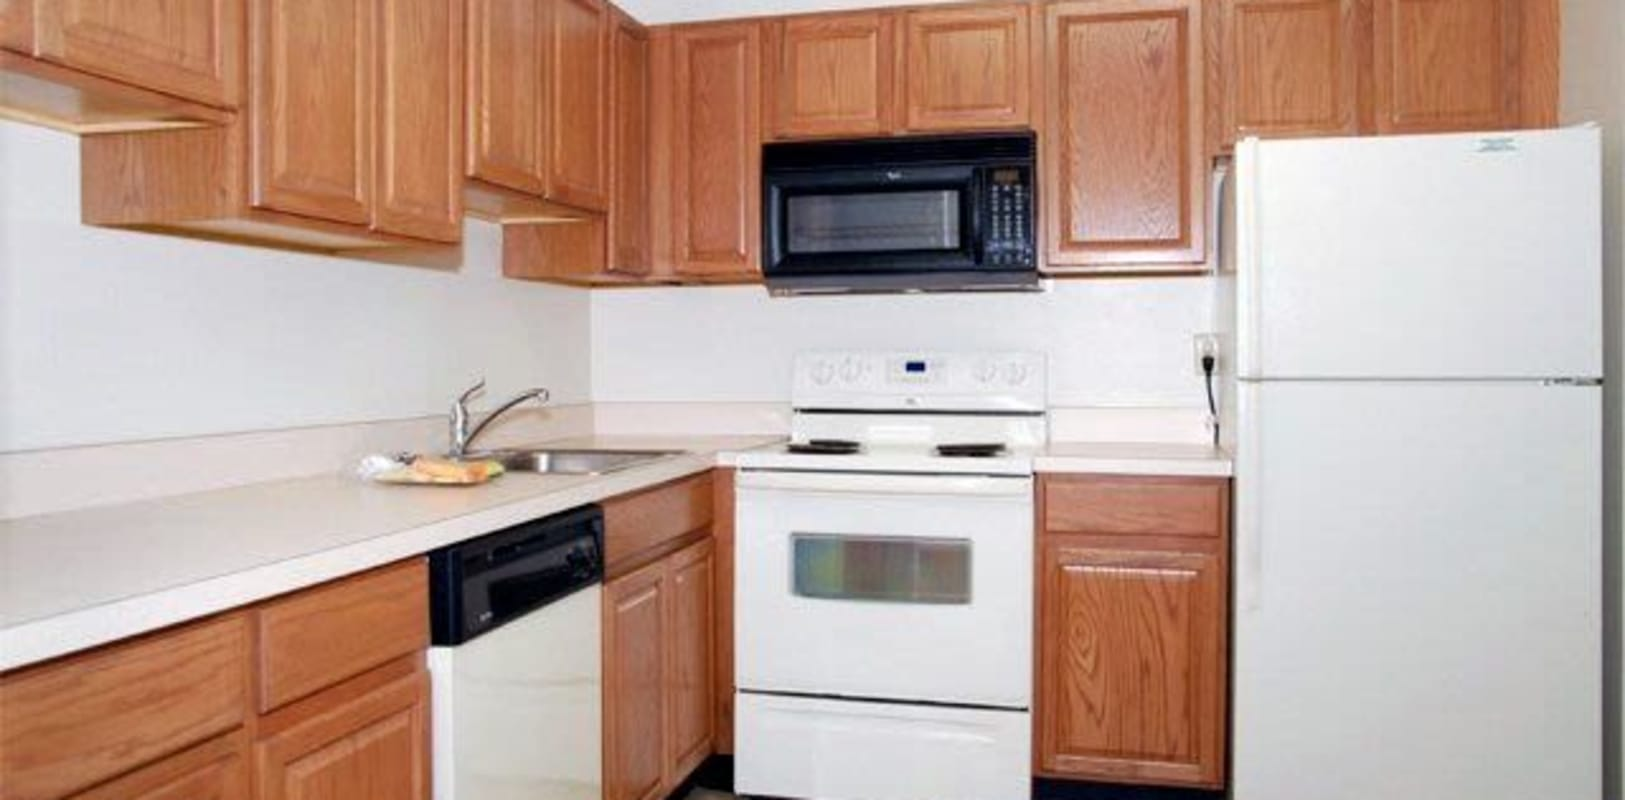 Apartment kitchen with wood style cabinets and white appliances in Whitehall, {location_state_name}} at Lehigh Valley